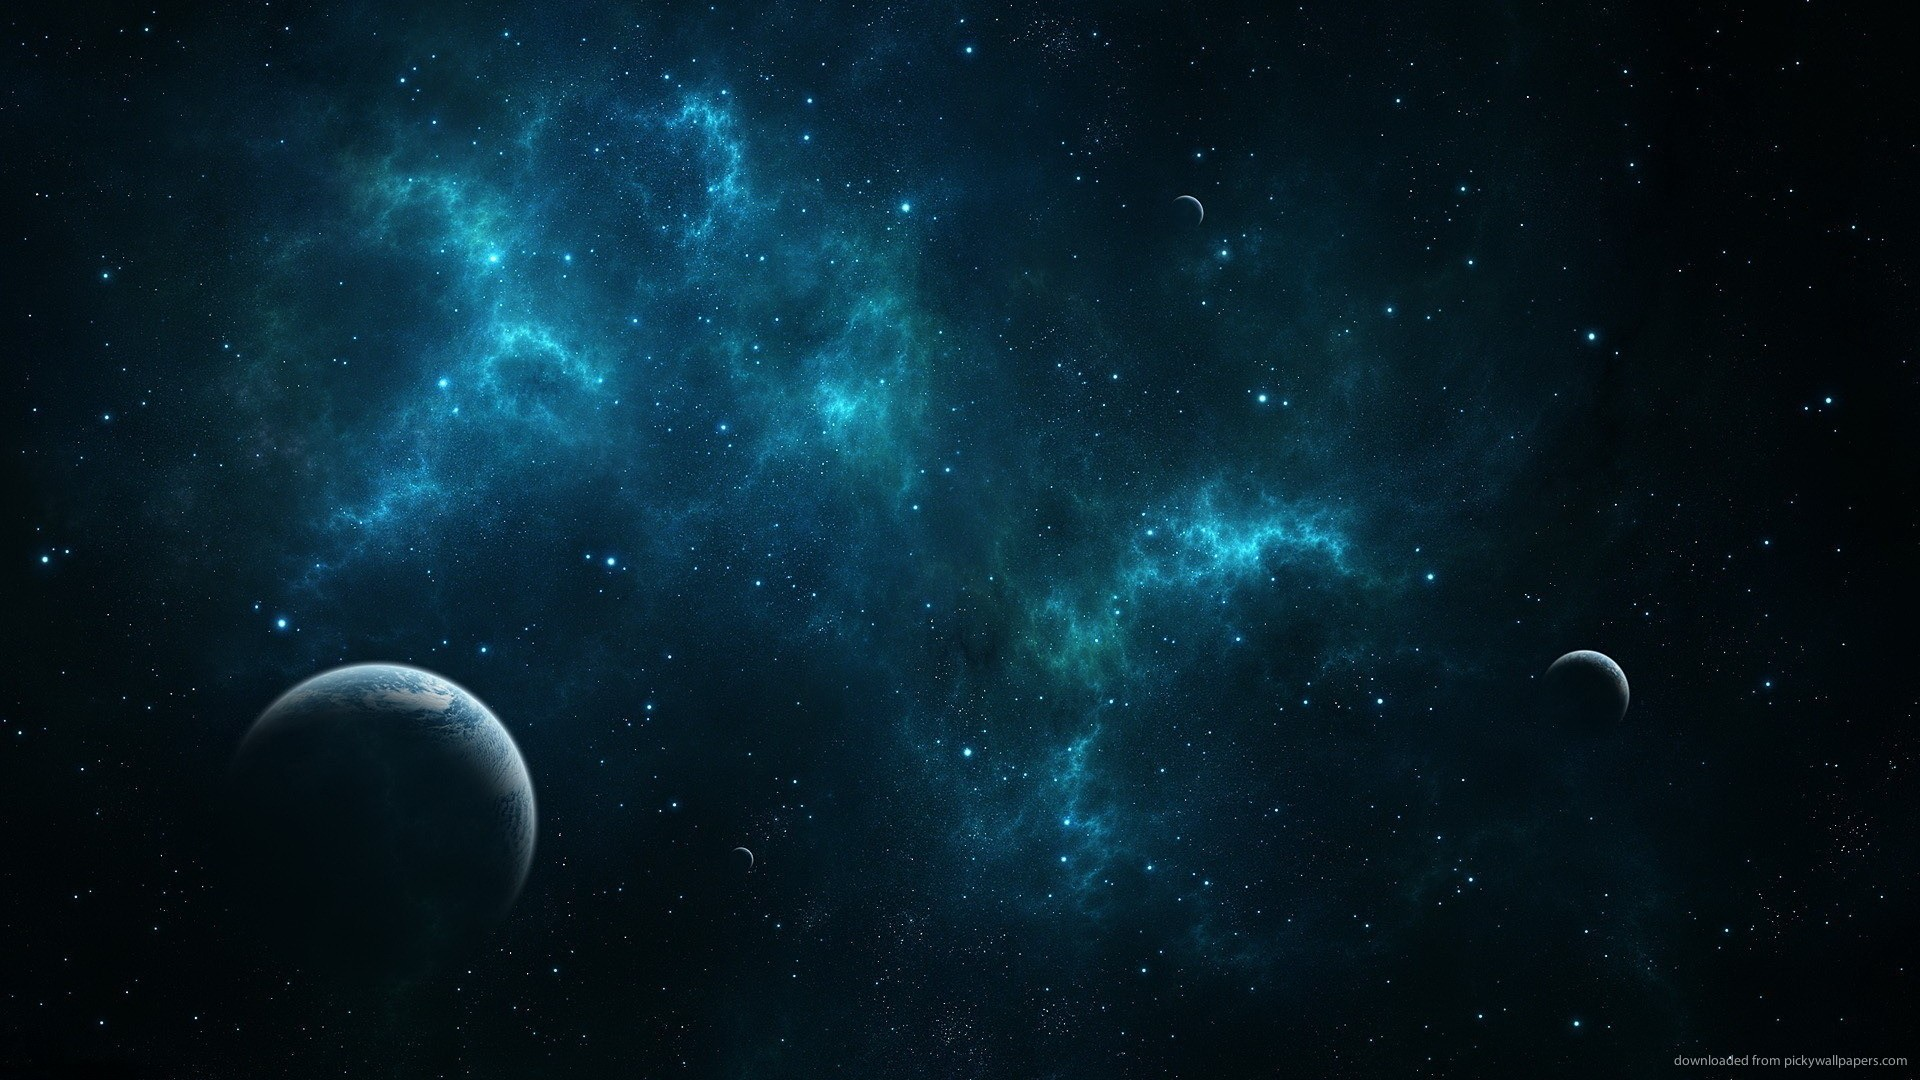 Deep blue space picture 1920x1080